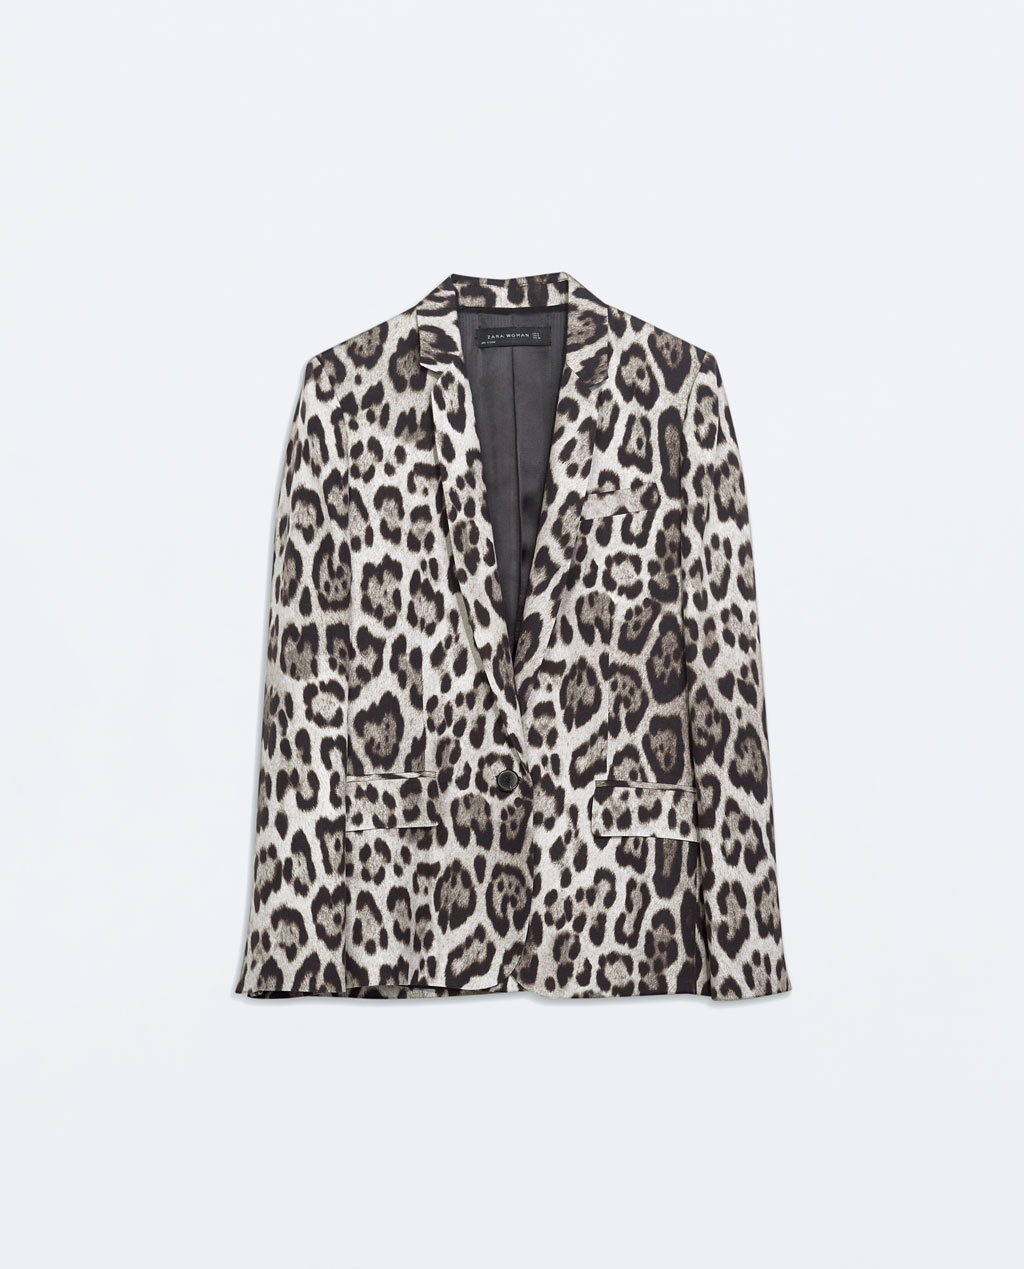 Straight Cut Leopard Print Blazer - style: single breasted blazer; length: below the bottom; collar: standard lapel/rever collar; secondary colour: ivory/cream; predominant colour: black; occasions: casual, evening, creative work; fit: tailored/fitted; fibres: viscose/rayon - 100%; hip detail: subtle/flattering hip detail; sleeve length: long sleeve; sleeve style: standard; collar break: medium; pattern type: fabric; pattern: animal print; texture group: woven light midweight; trends: outerwear chic; season: a/w 2014